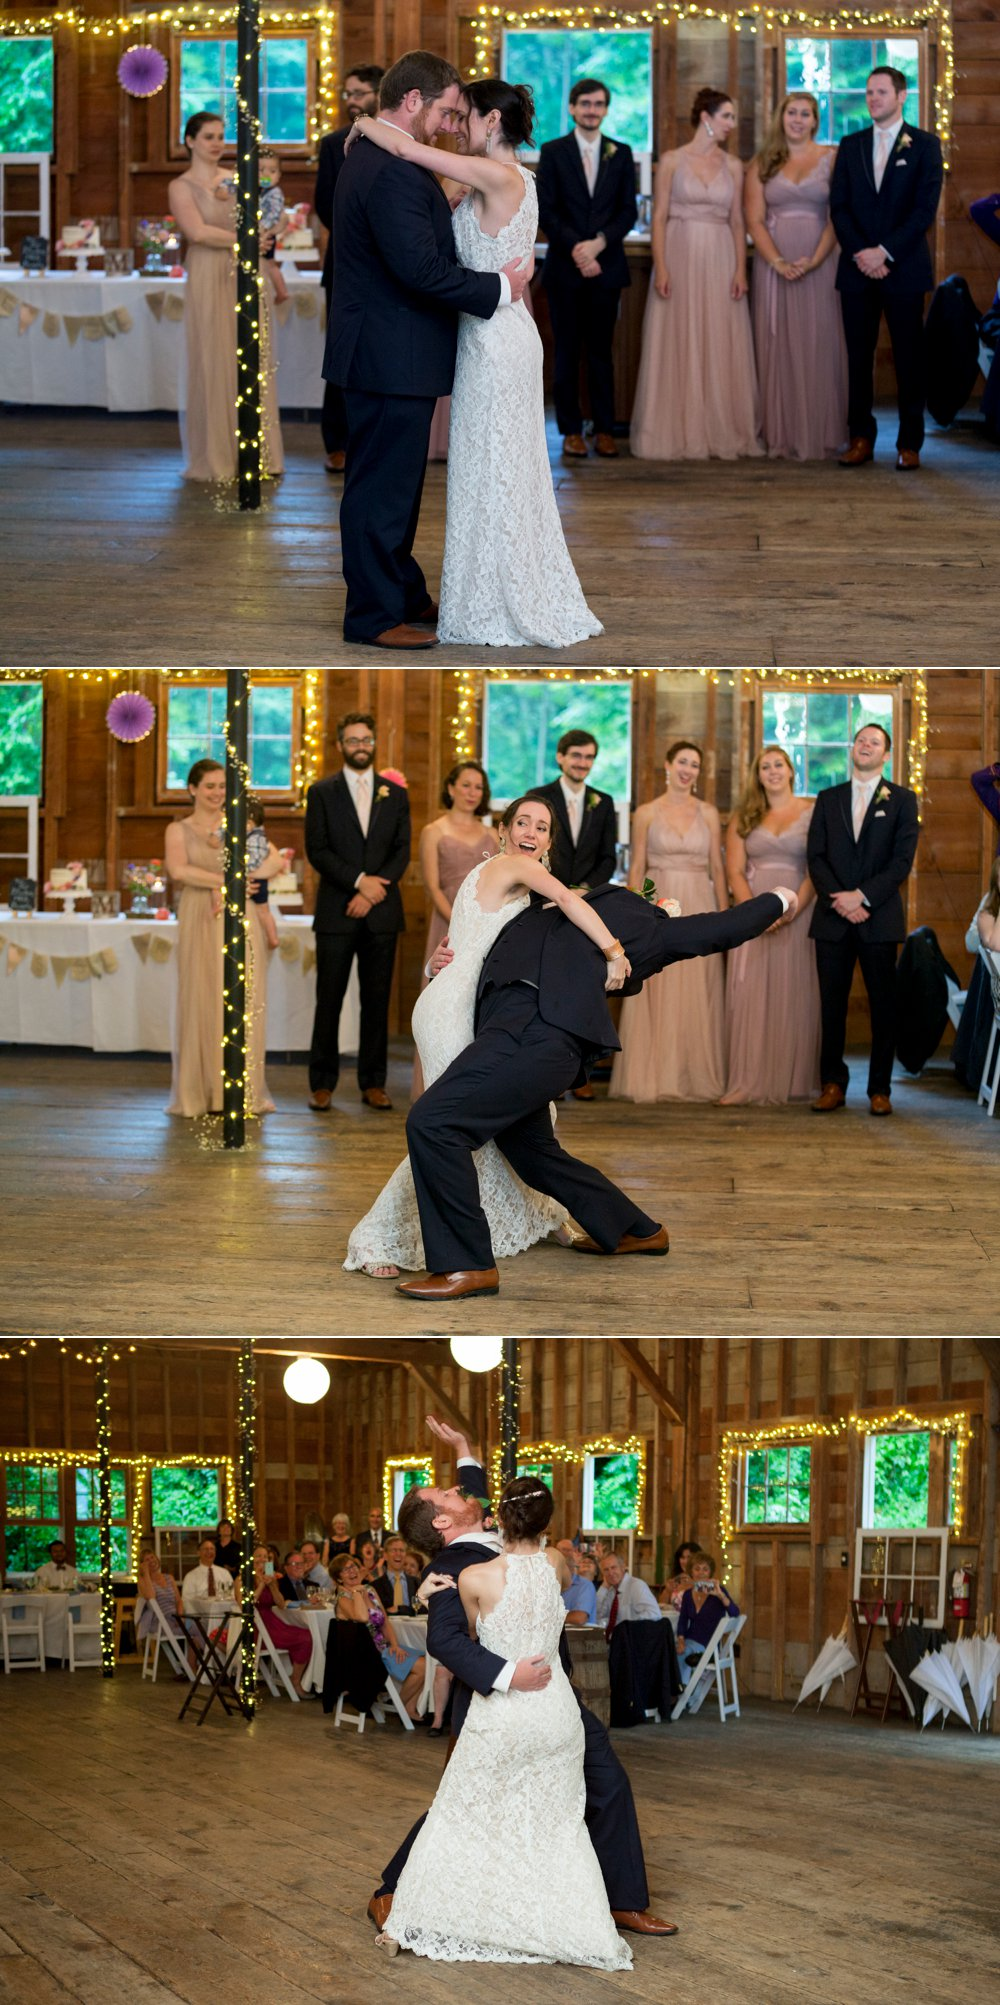 SomerbyJonesPhotography_WestMountainInnWedding_WestMountainInn_RusticVermontWedding_0046.jpg